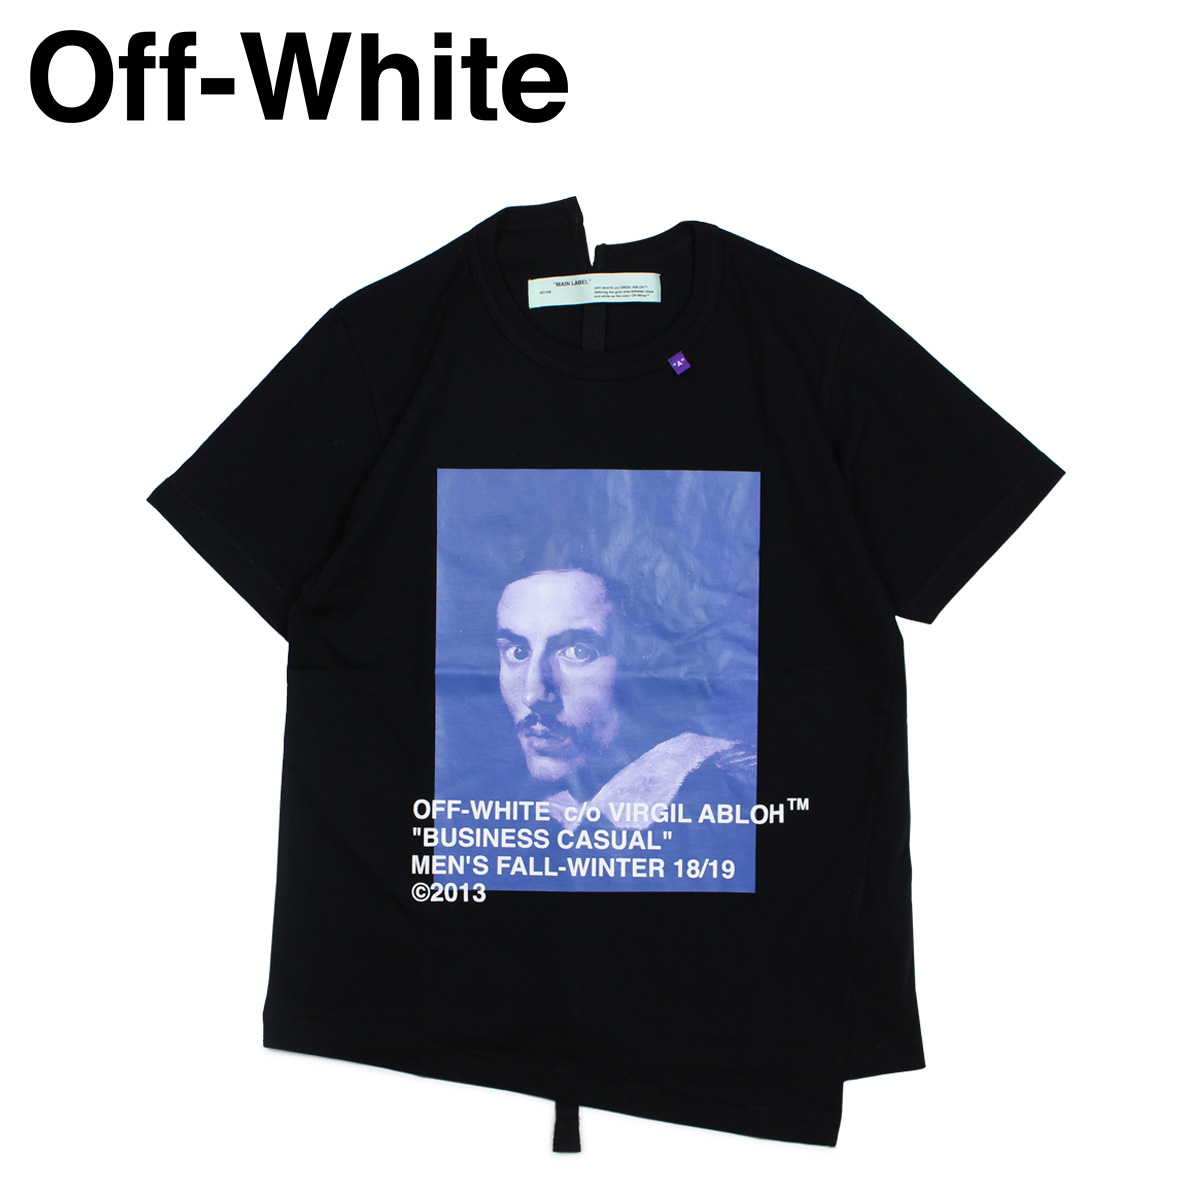 c12ef3dc [brand Off-white which the powerful design which got inspiration for  modernism architecture of the 20th century is characterized by]. T-shirts  ...